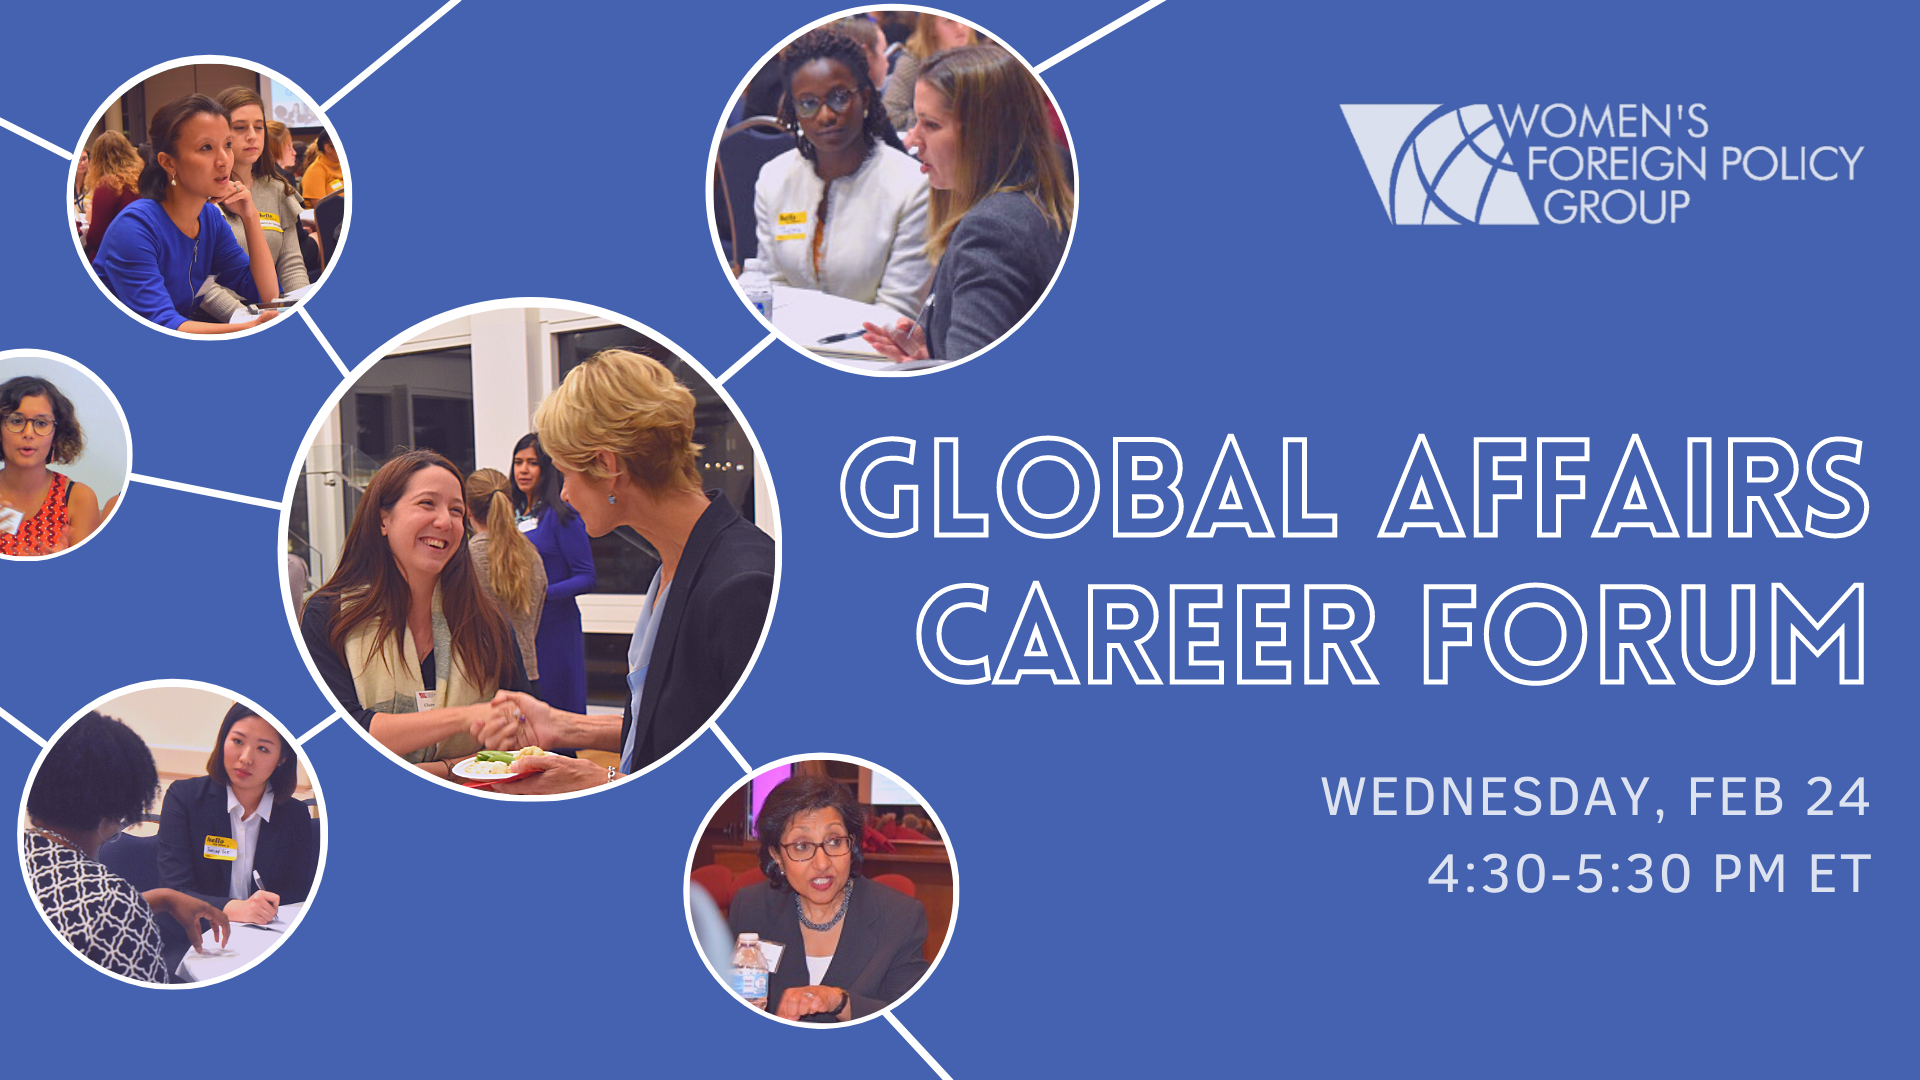 Global Affairs Career Forum